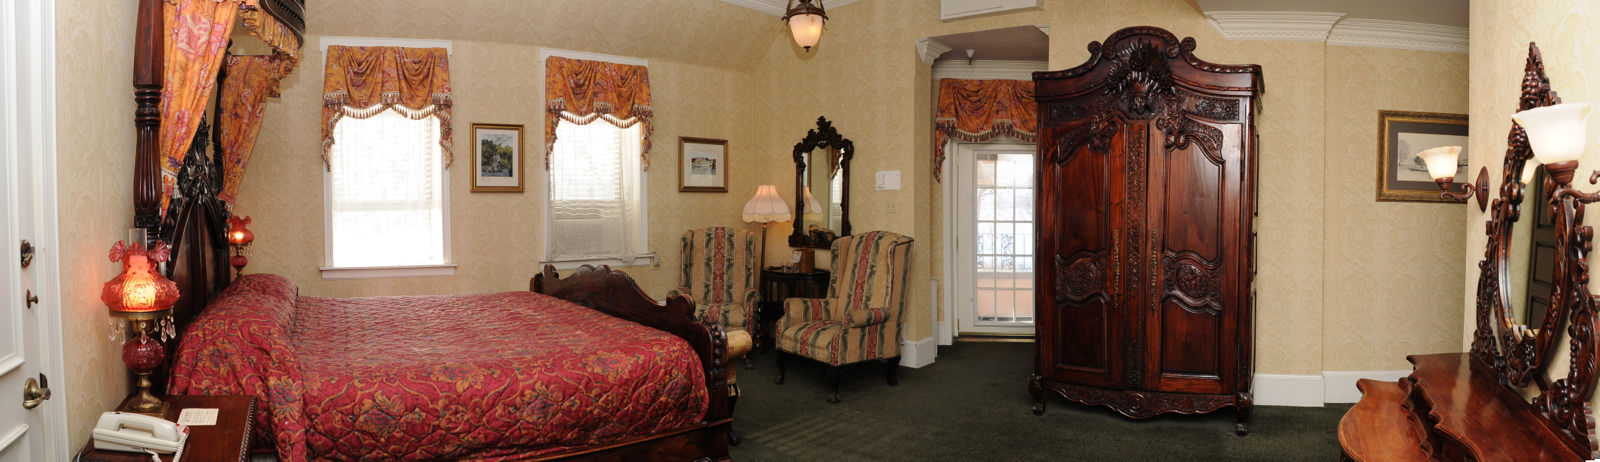 4) Riverview King Parlor with Balcony.jpg